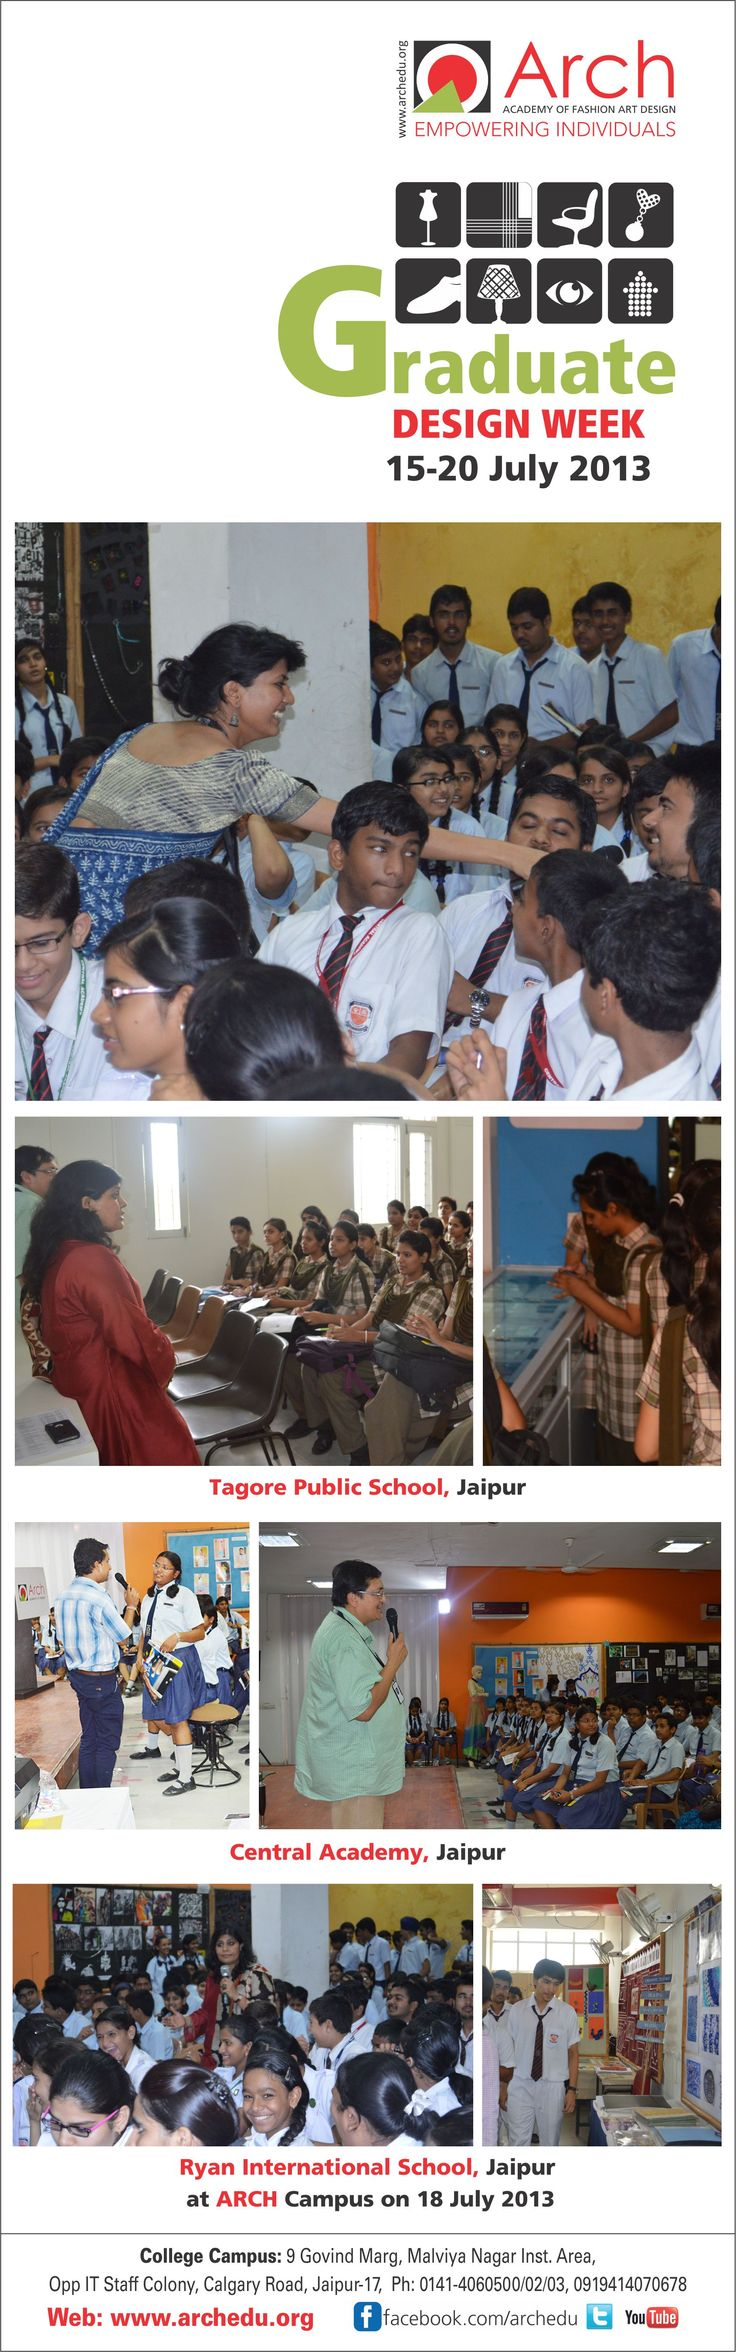 Tagore Public School, Central Academy & Ryan International School Jaipur at ARCH Campus on 18 July 2013